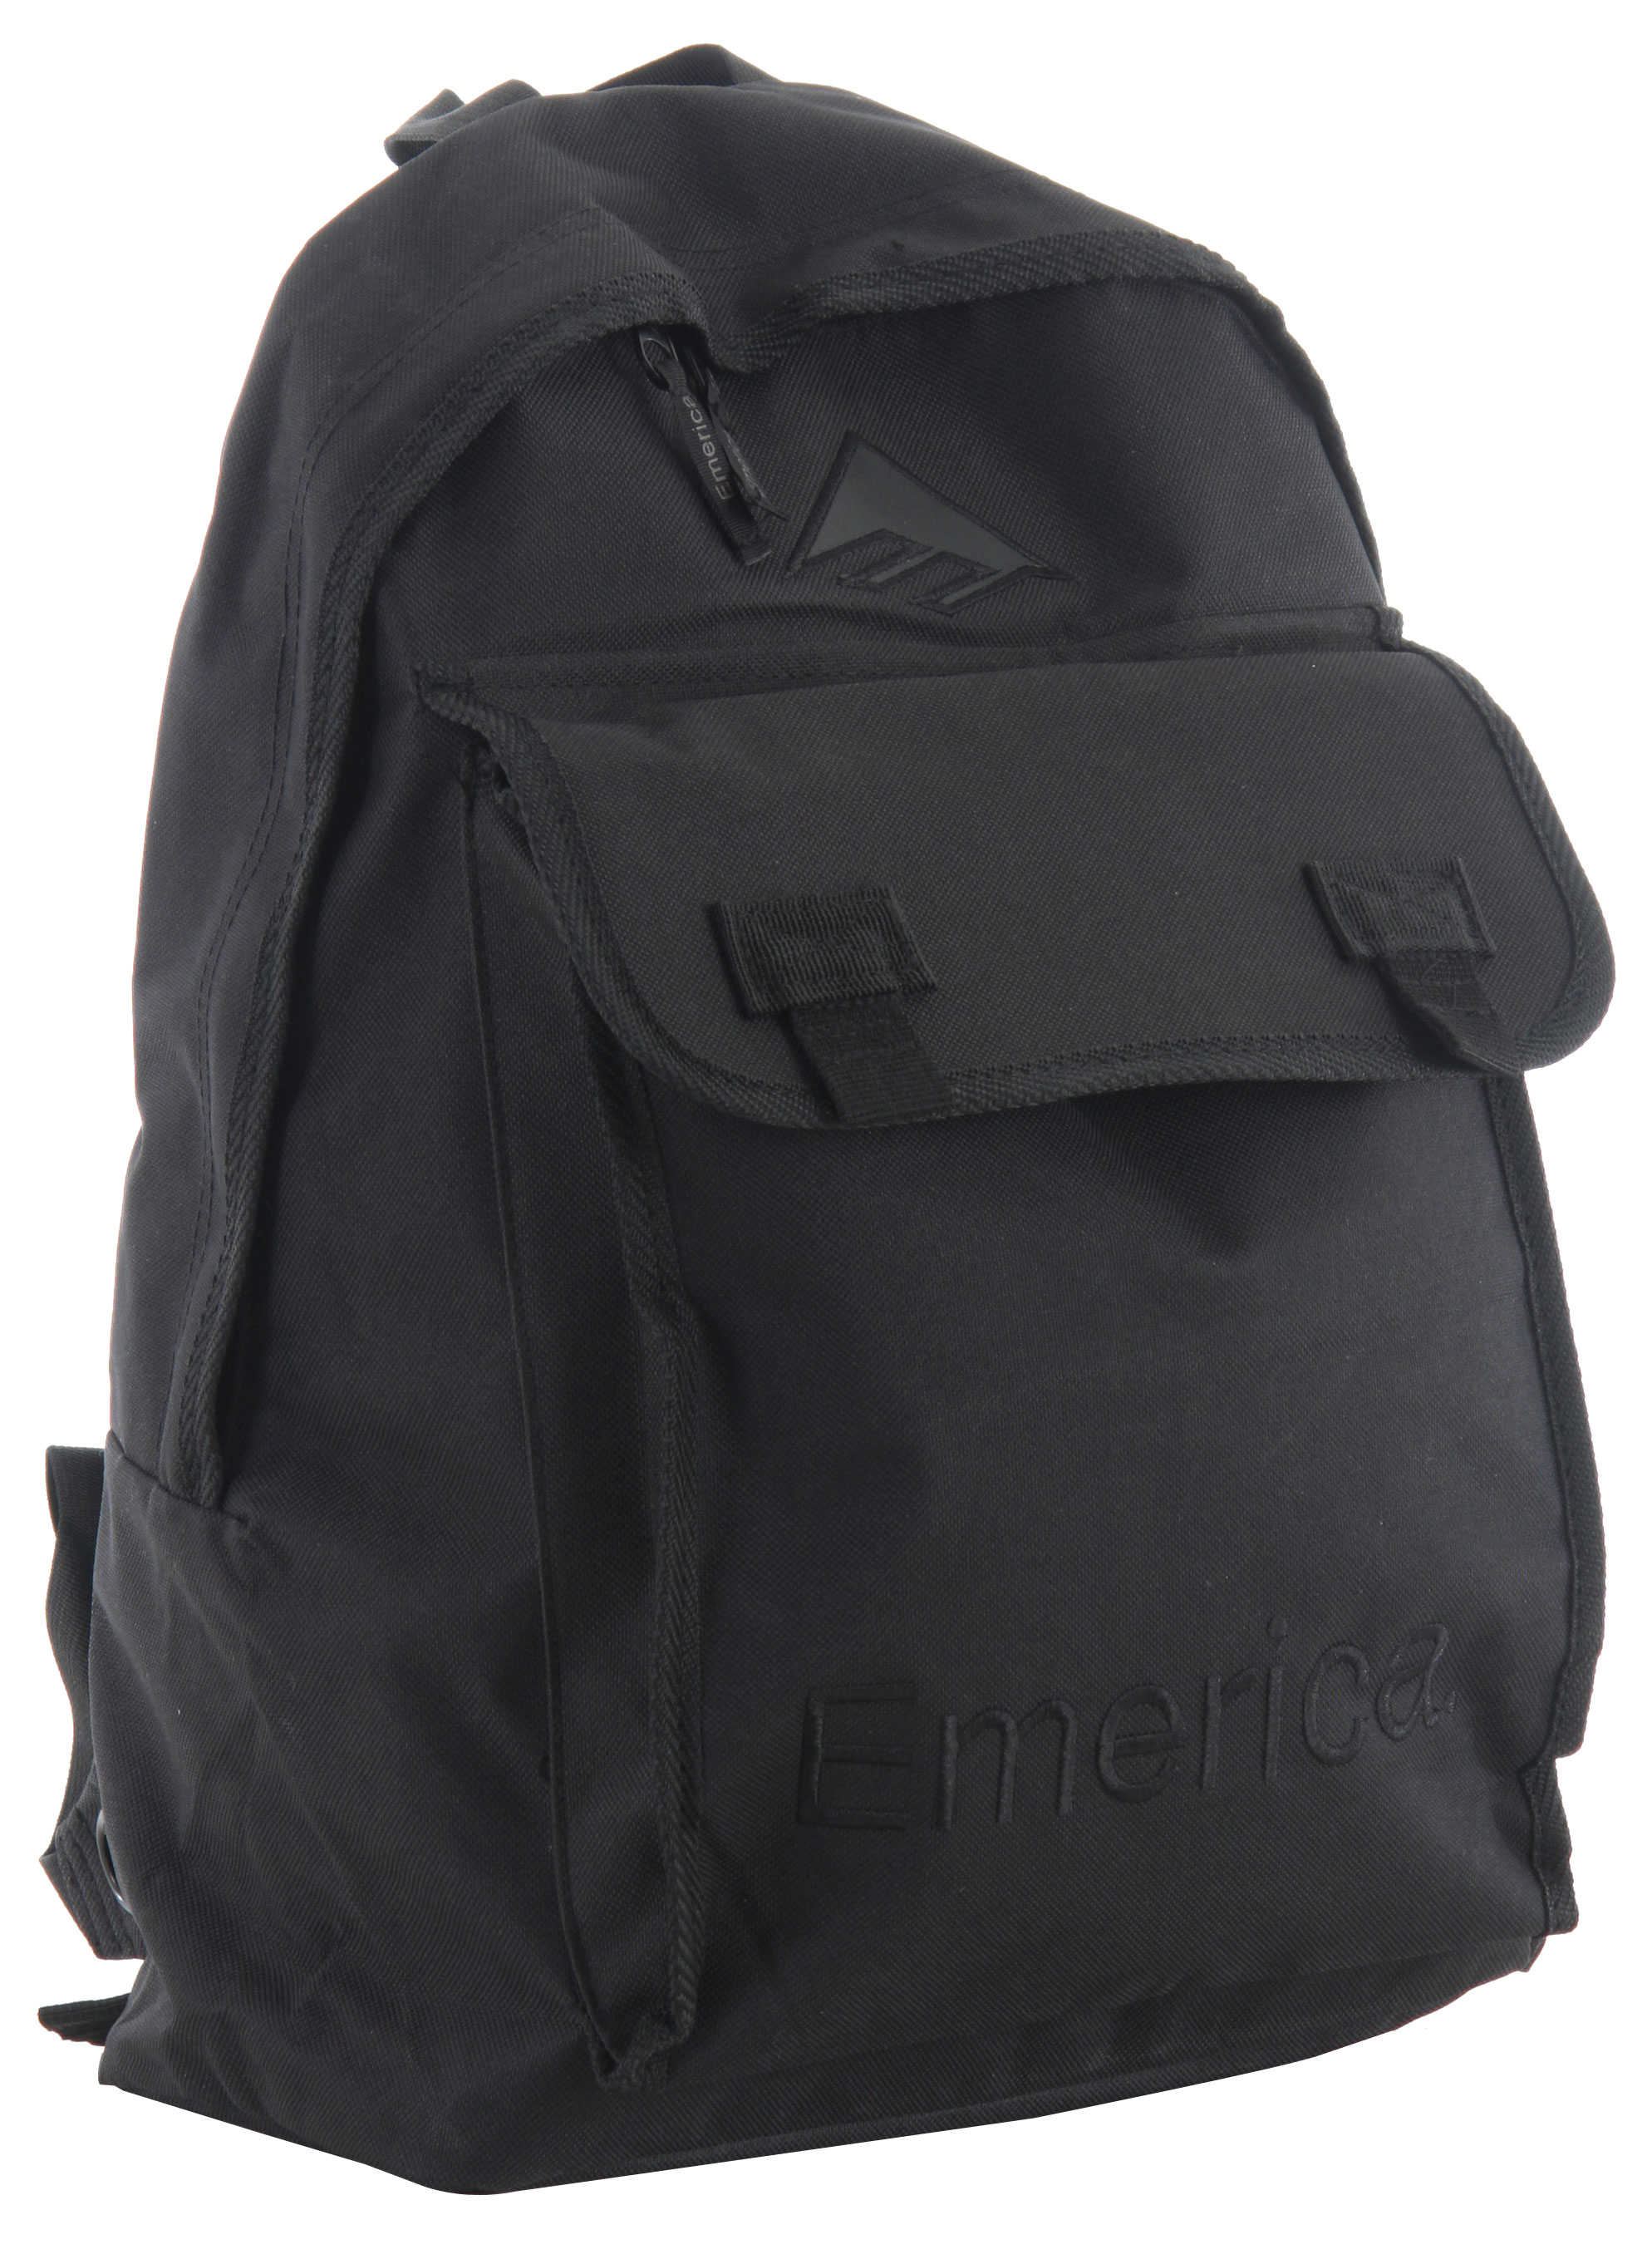 The Emerica Alamo Backpack has multi compartments and is made out of 600D polyester. - $20.95